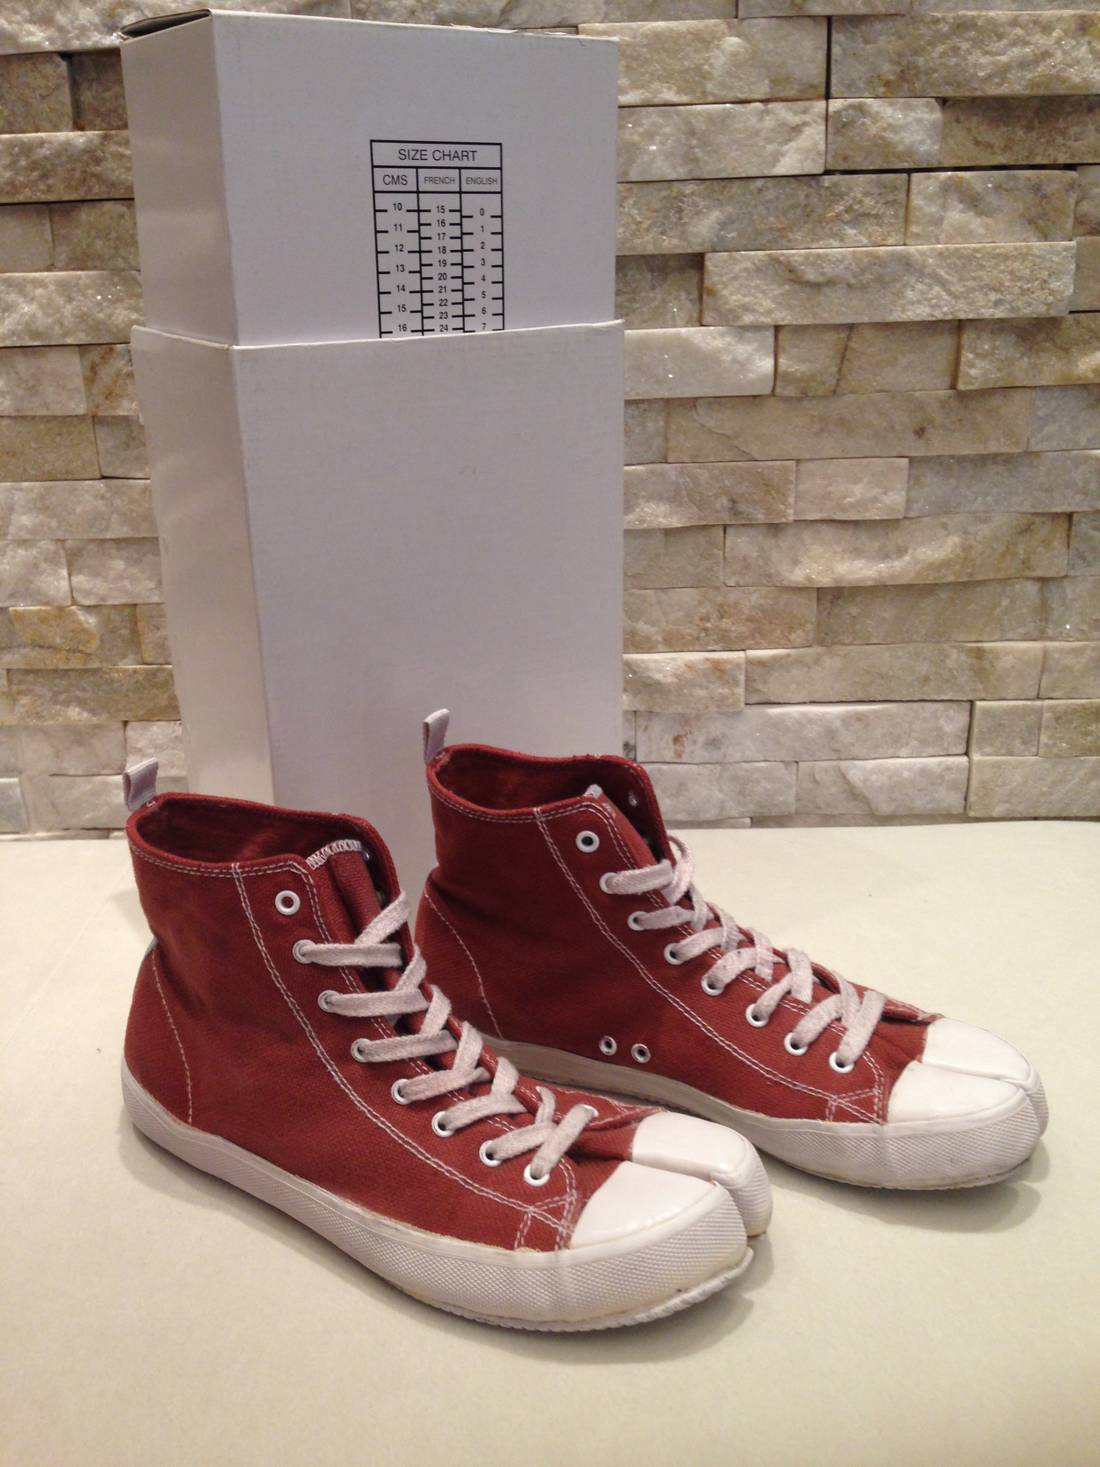 Maison Margiela Tabi hi-top sneakers best seller for sale free shipping outlet outlet under $60 zWCMf5F